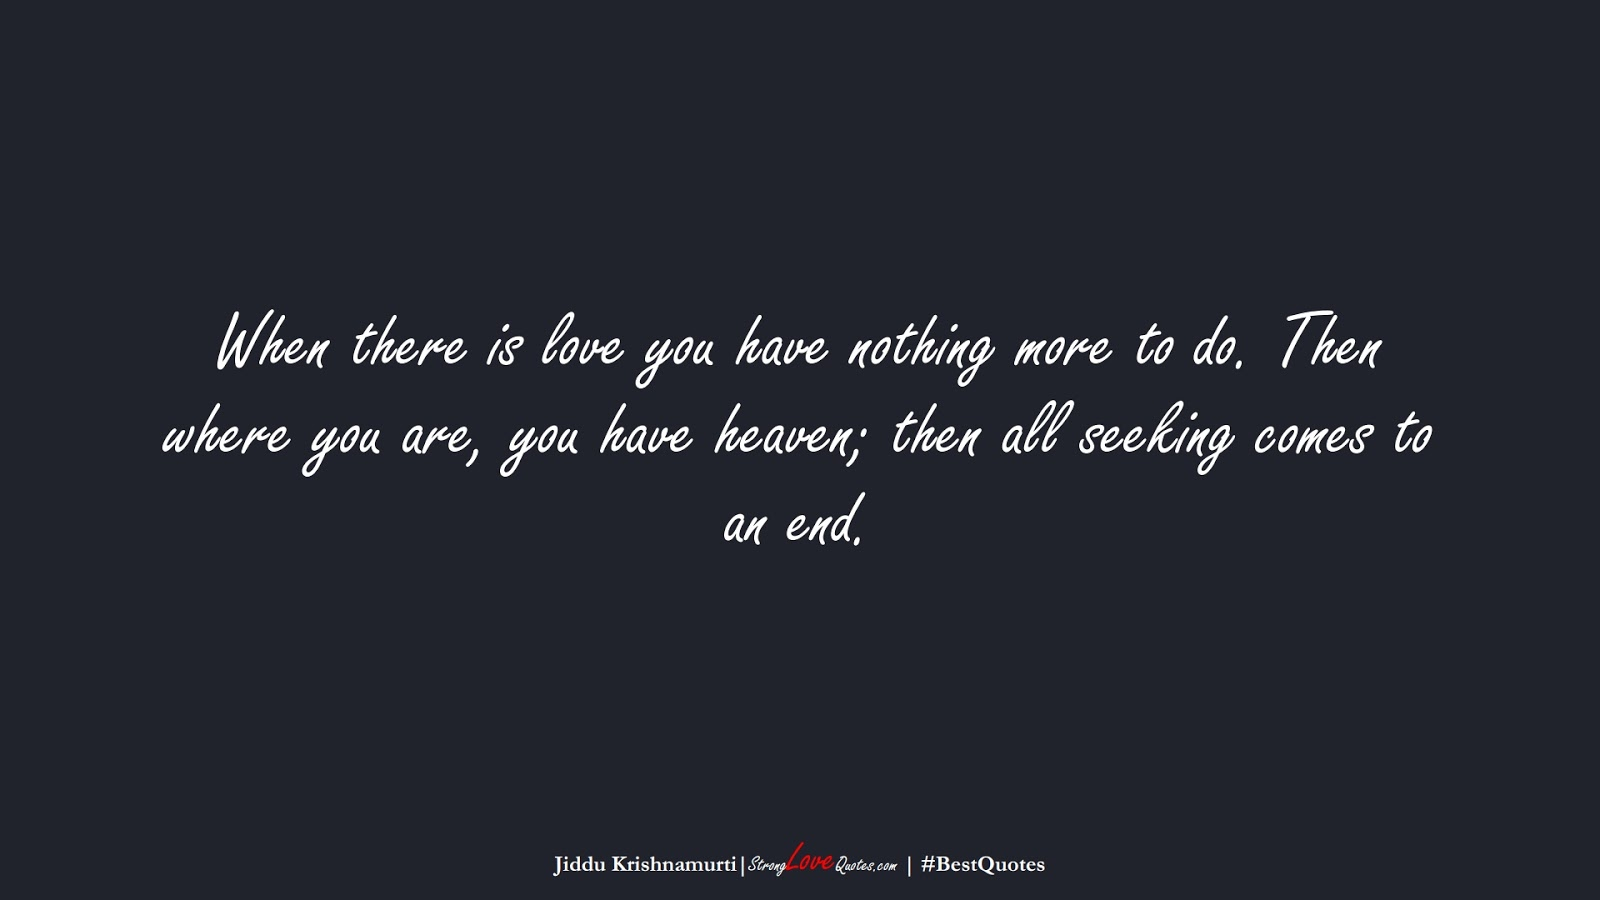 When there is love you have nothing more to do. Then where you are, you have heaven; then all seeking comes to an end. (Jiddu Krishnamurti);  #BestQuotes